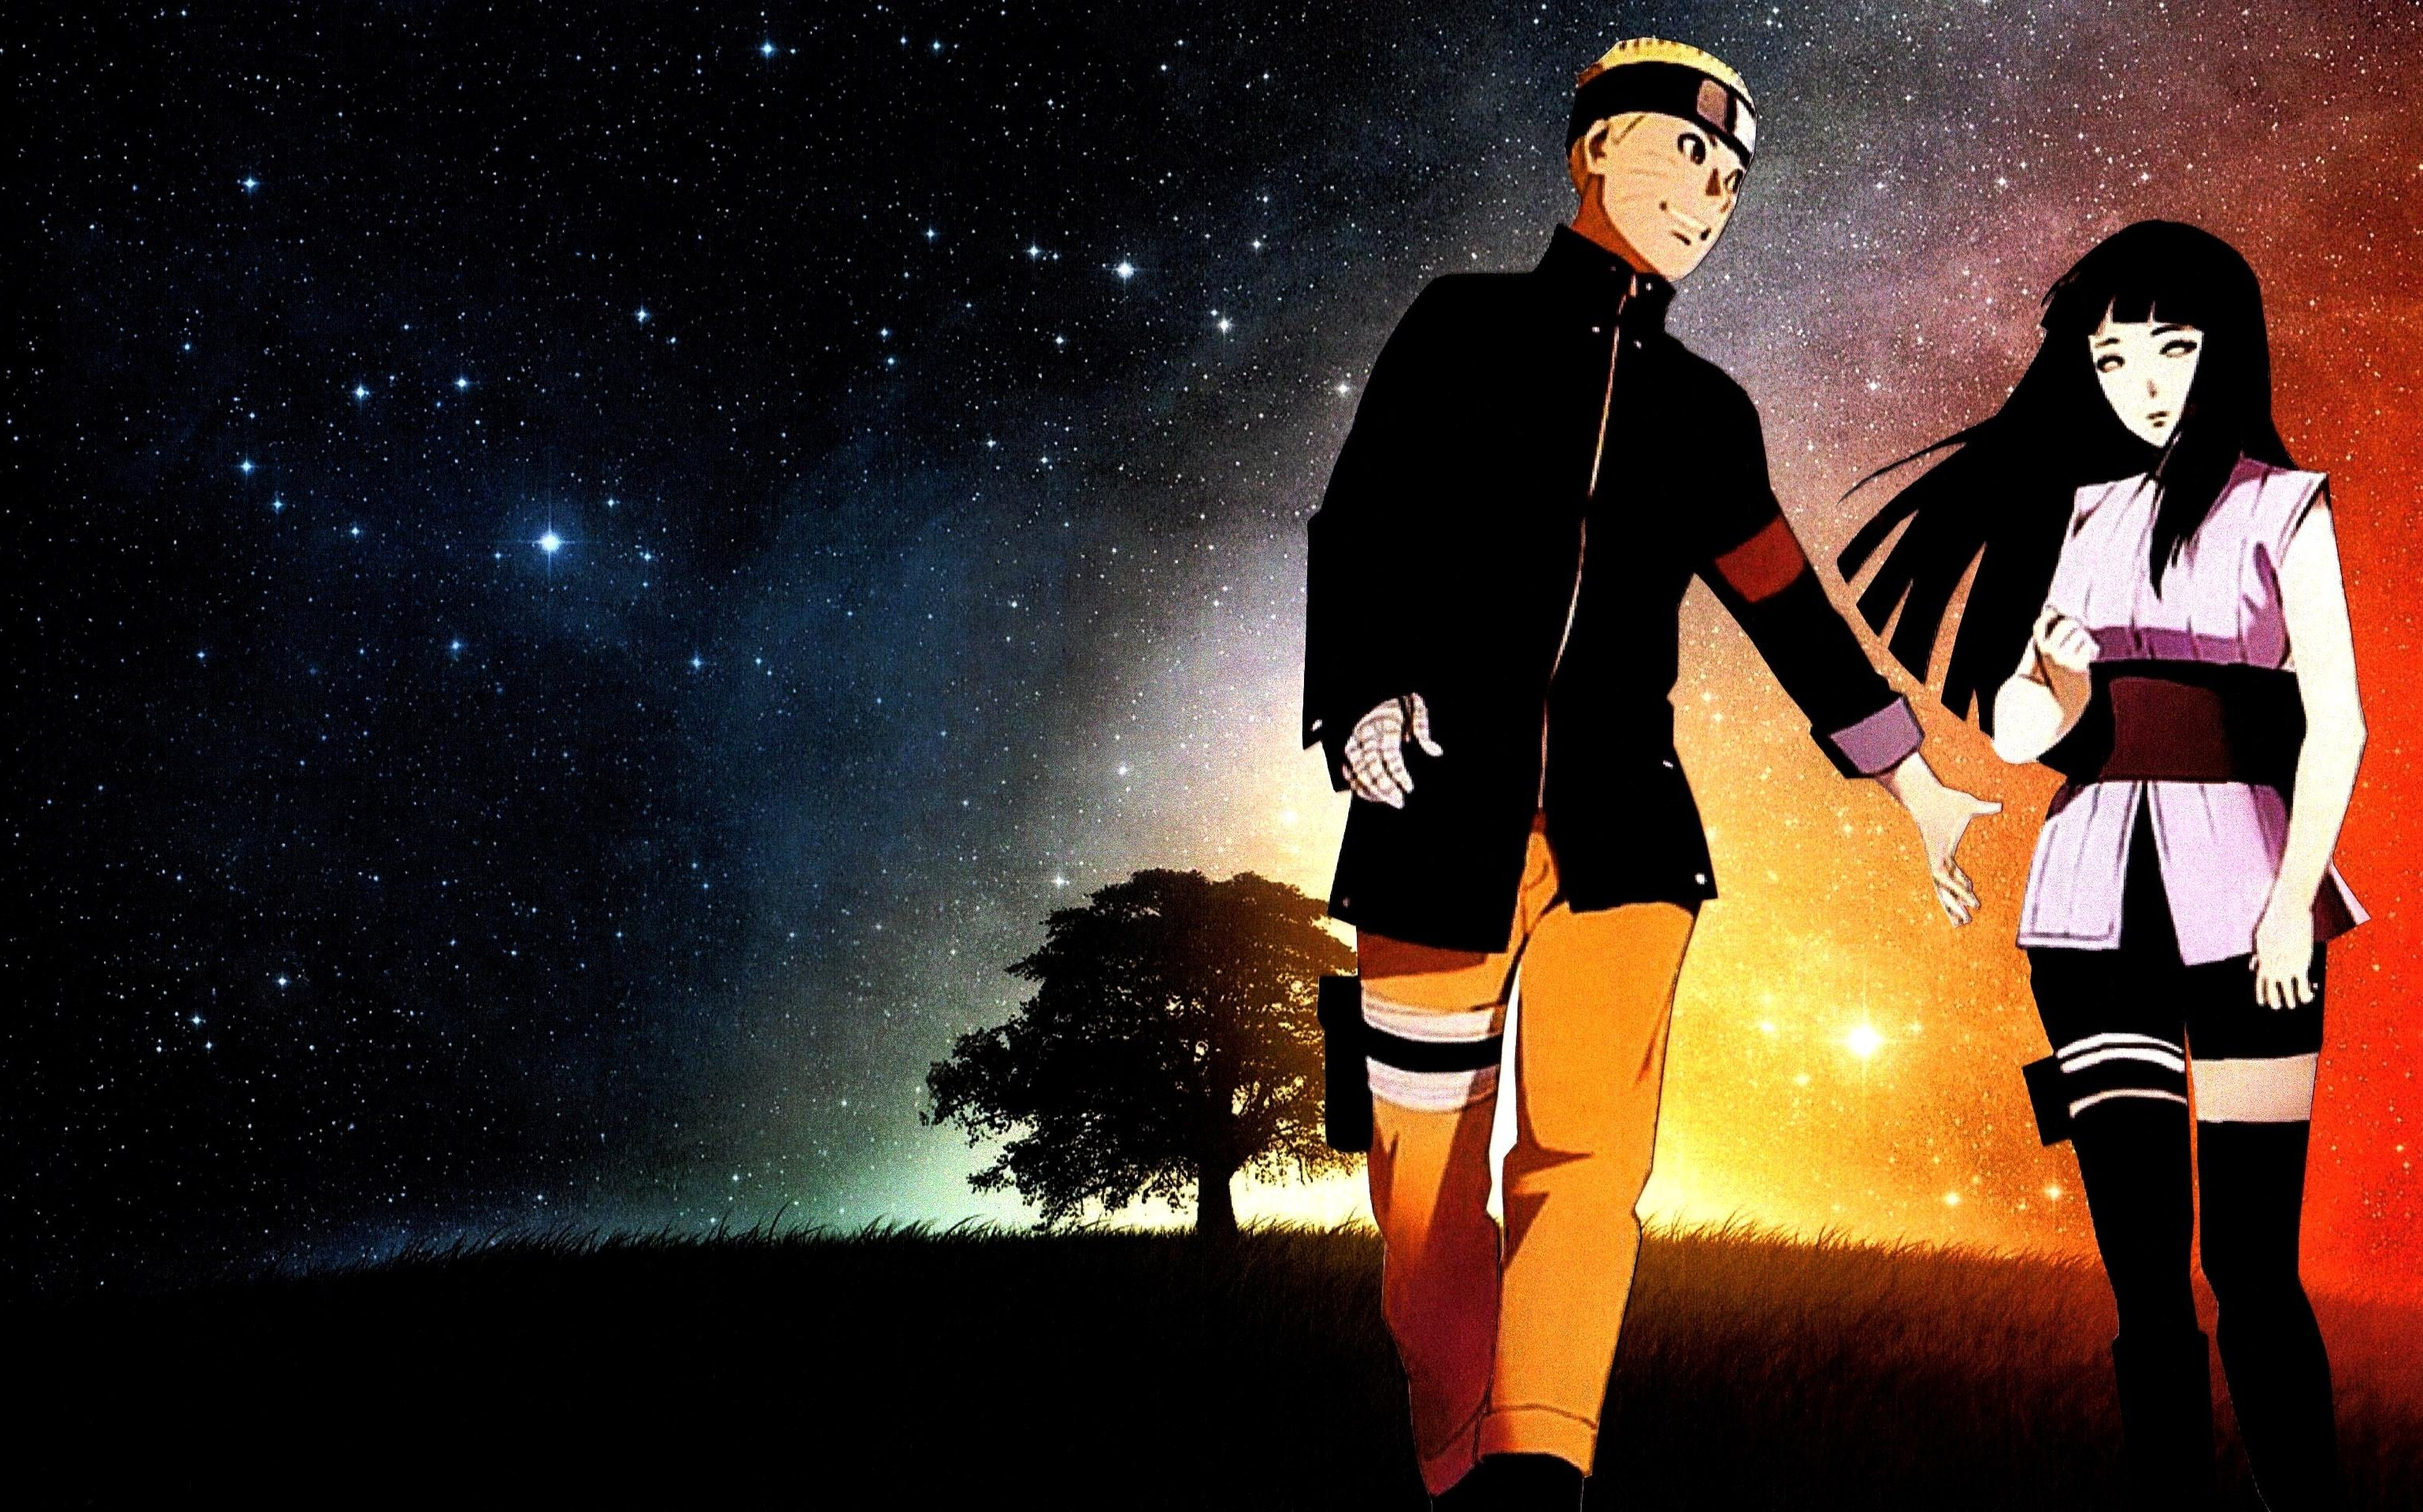 Naruto HD Wallpaper 1 Download Free Full Wallpapers For Desktop